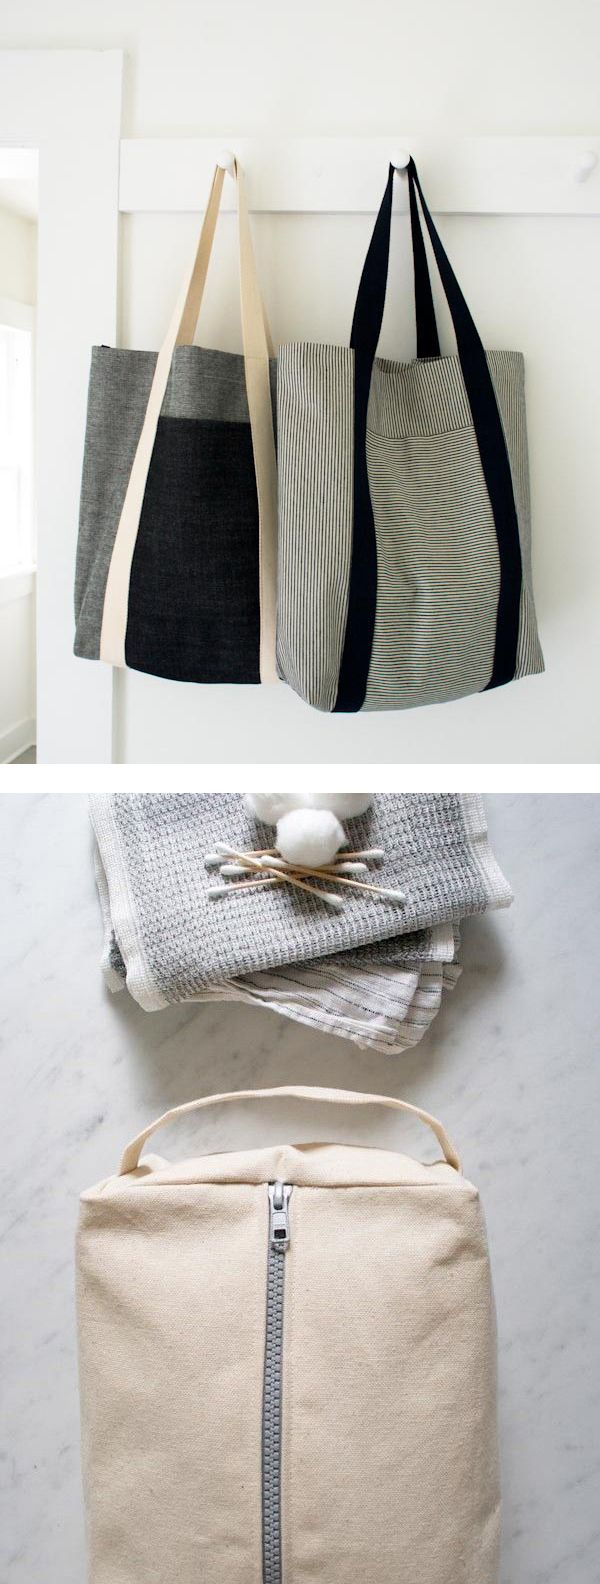 DIY Sewing Projects